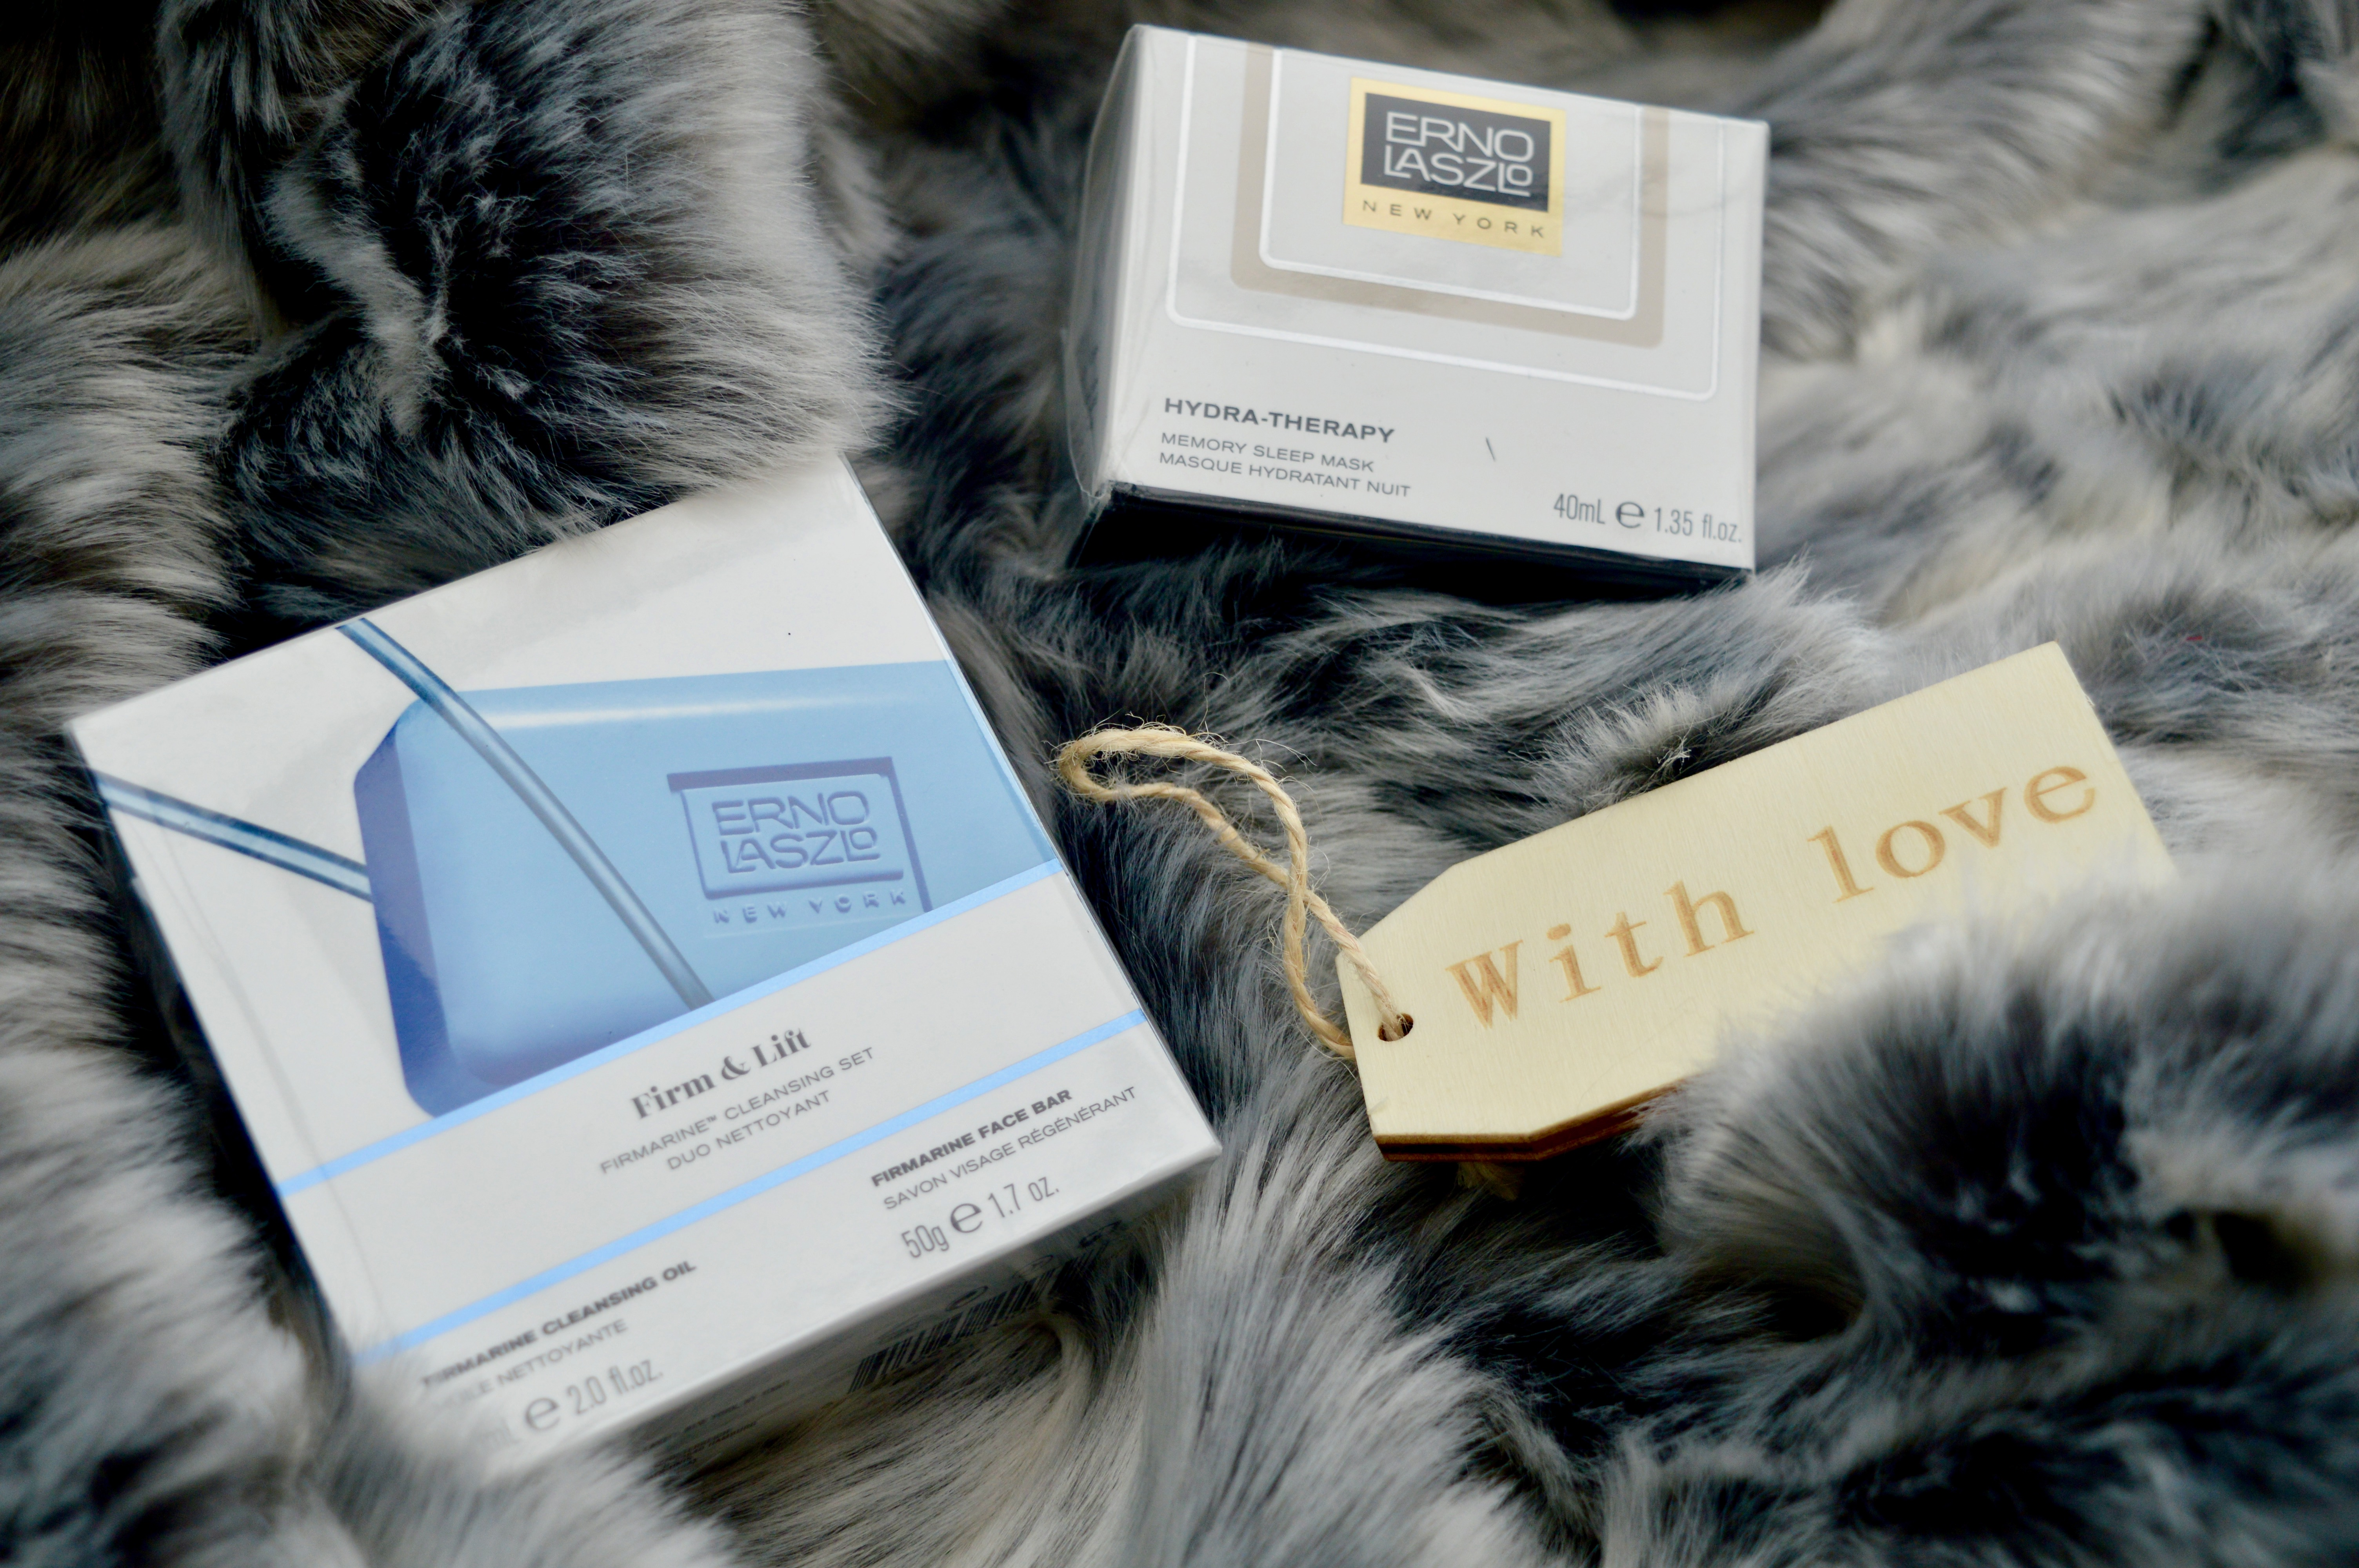 Erno Laszlo New York   Beauty Regime   Christmas Gift Guide - What to buy your Grandma   Elle Blonde Luxury Lifestyle Destination Blog